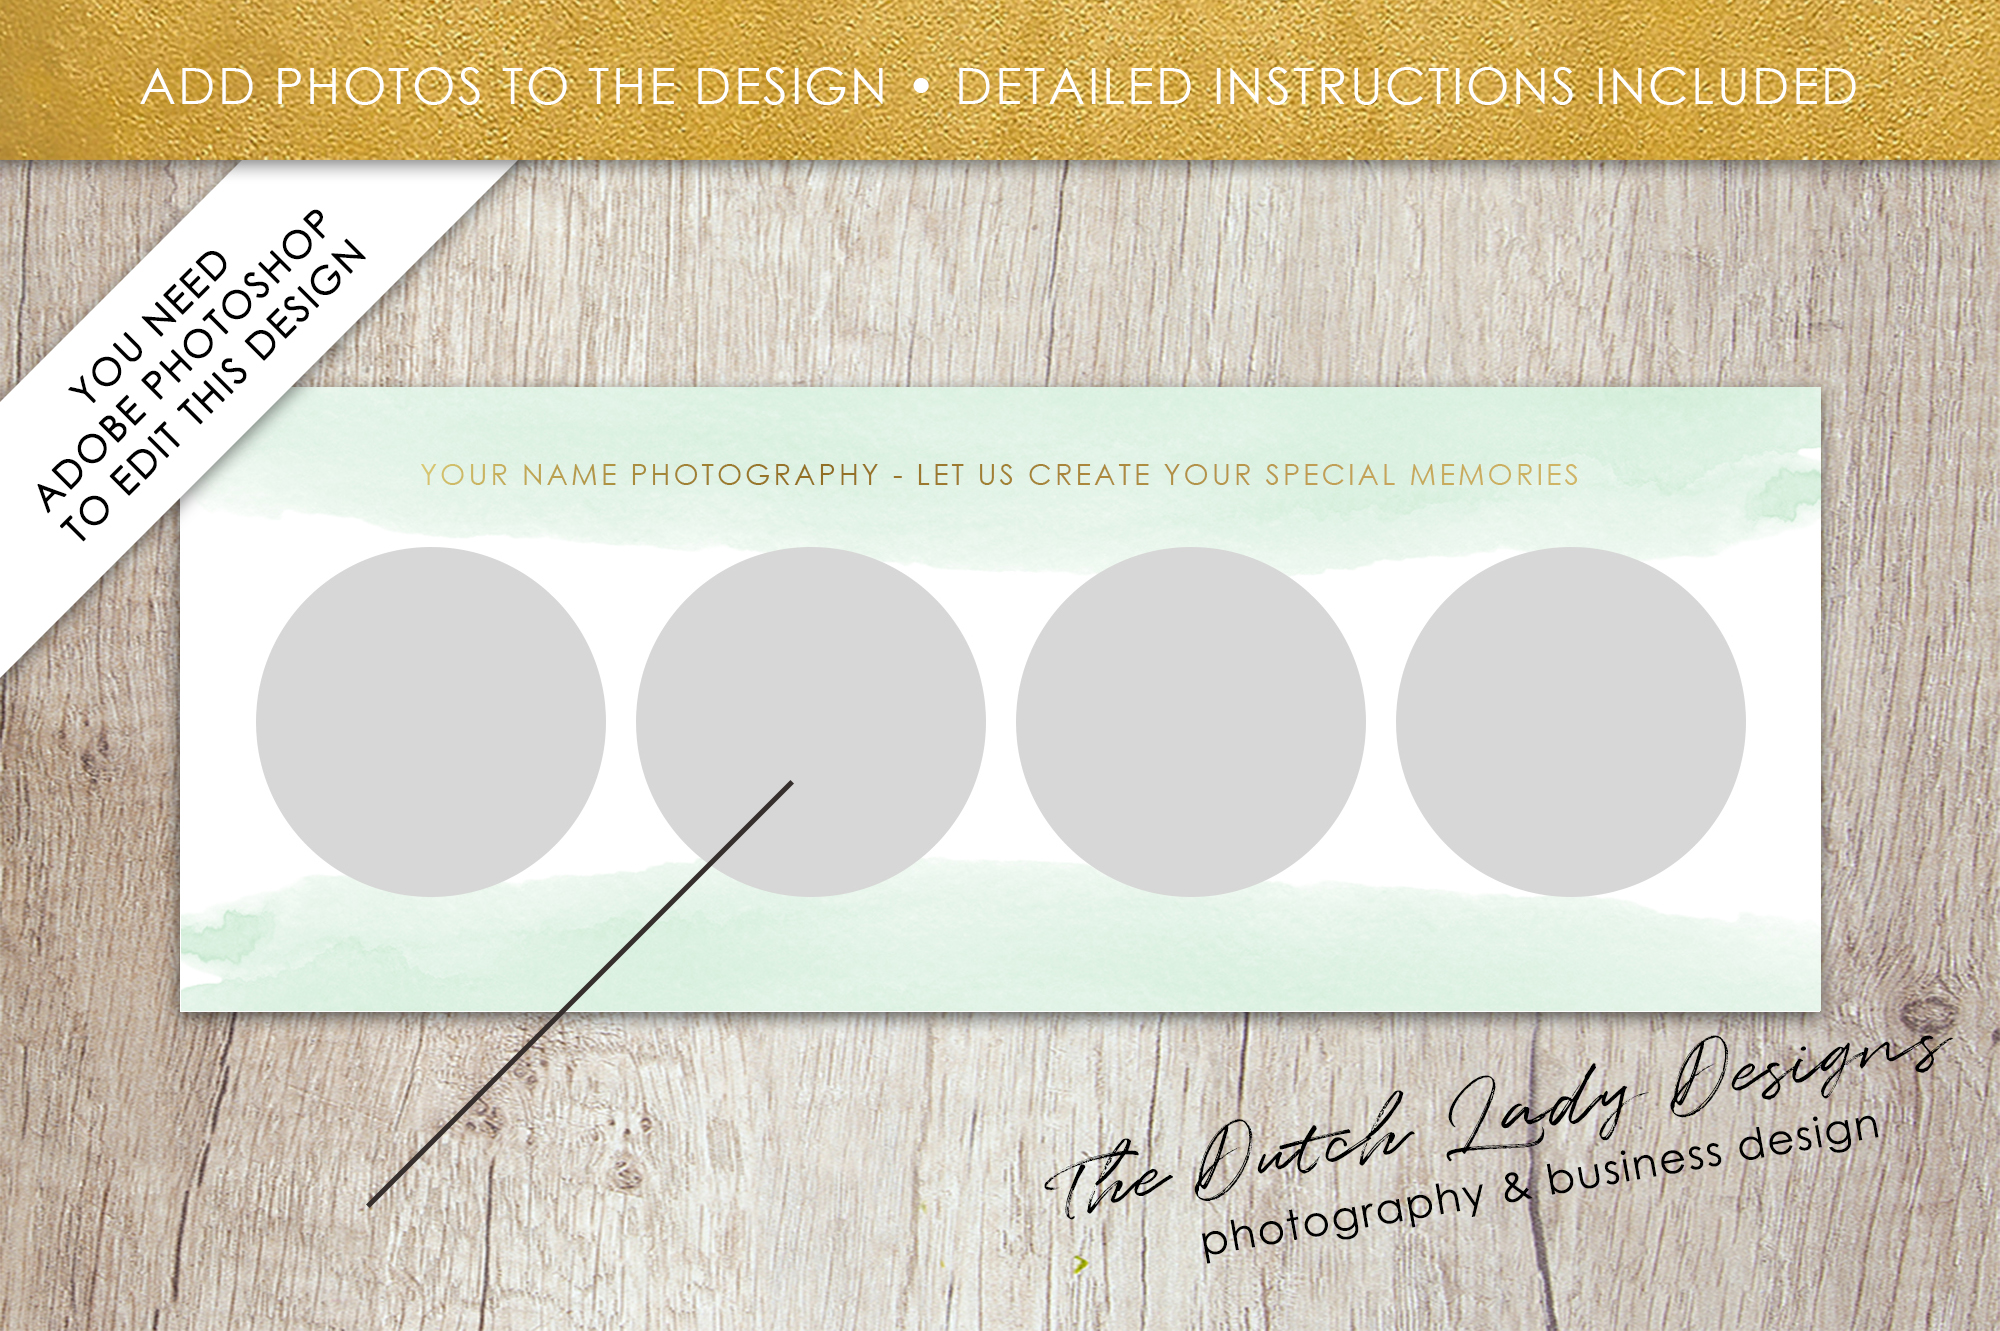 Photography Facebook Cover Banner Template - Design #13 example image 2